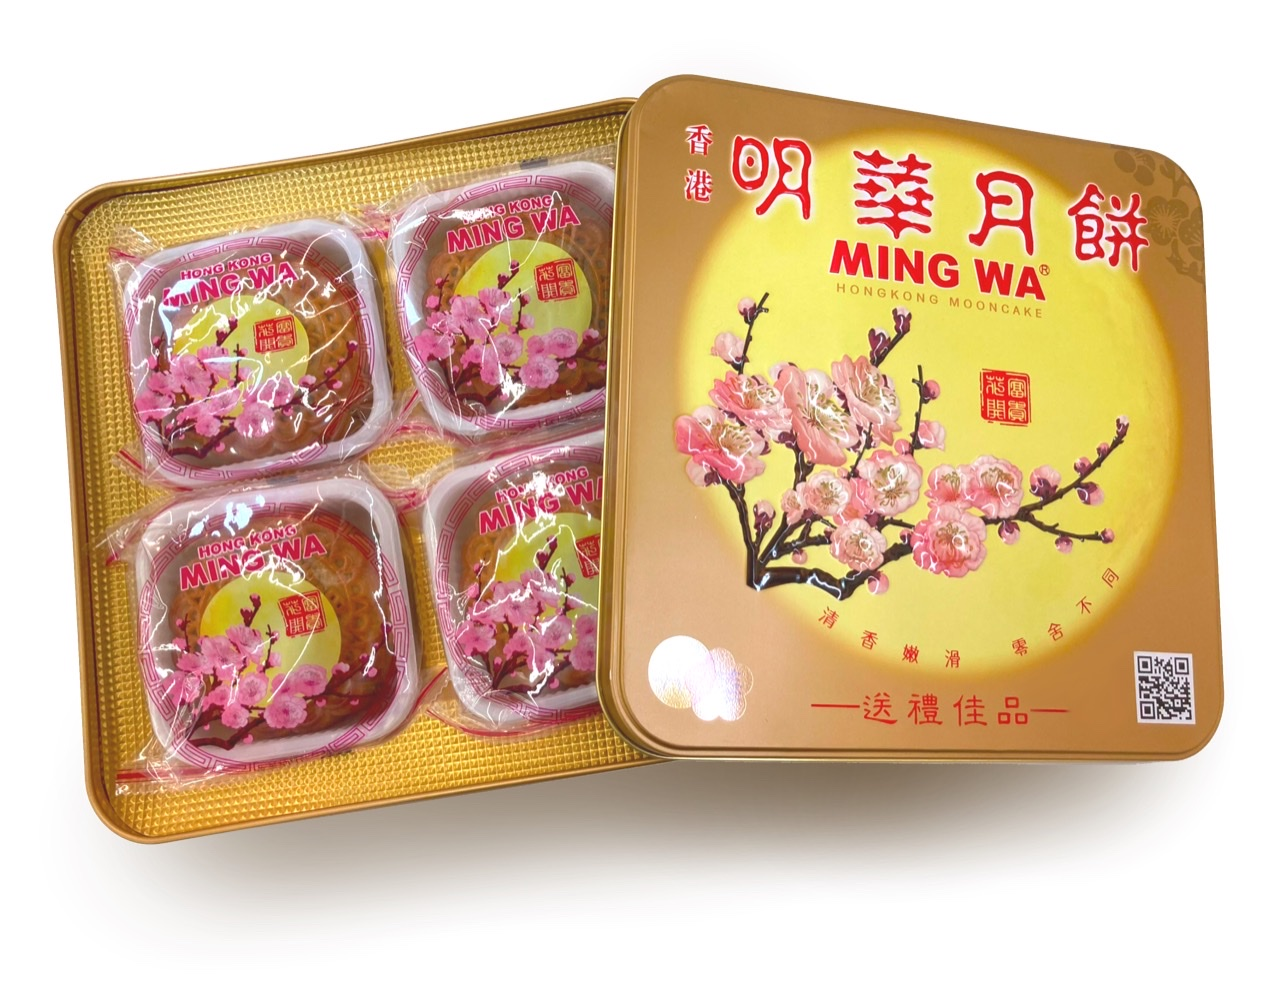 Mooncake with Whole Red Bean Filling and a Single Yolk by Ming Wa